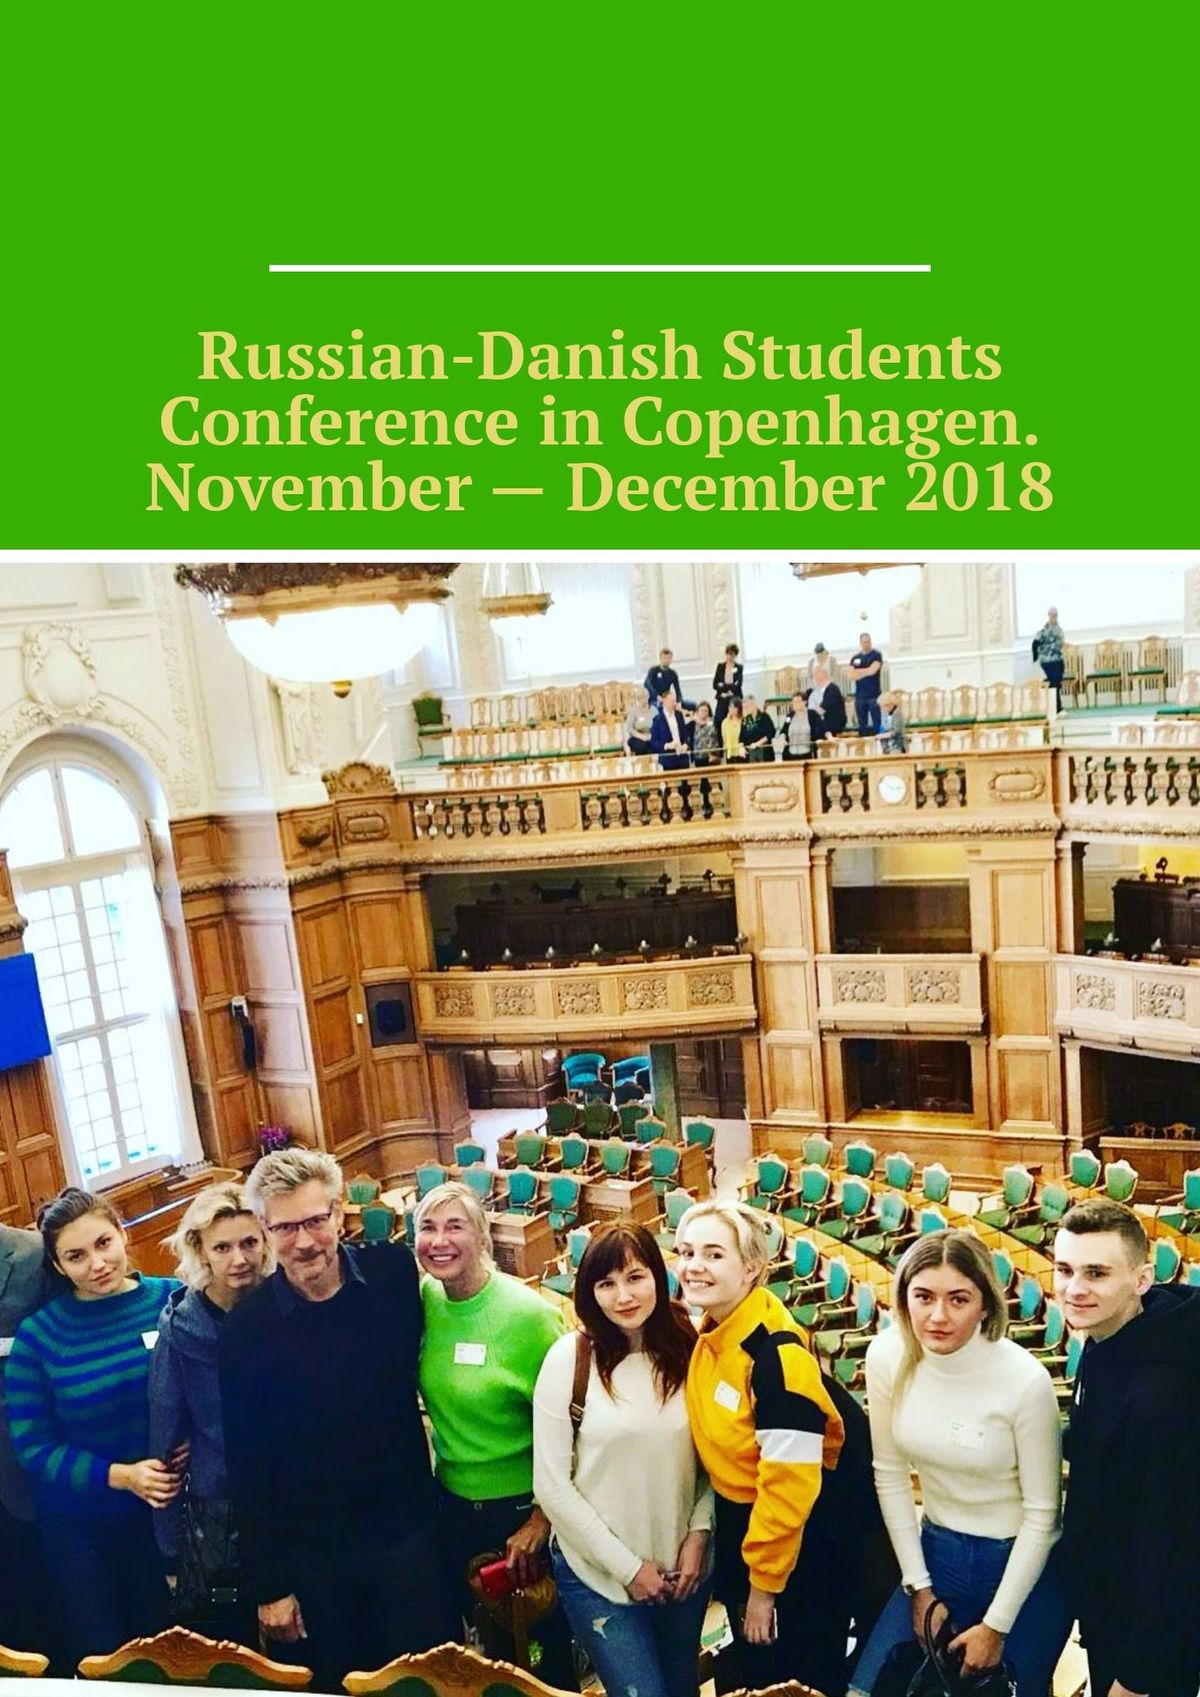 Bjørnø Irina Russian-Danish Students Conference in Copenhagen. November – December 2018 сборник статей advances of science proceedings of articles the international scientific conference czech republic karlovy vary – russia moscow 29–30 march 2016